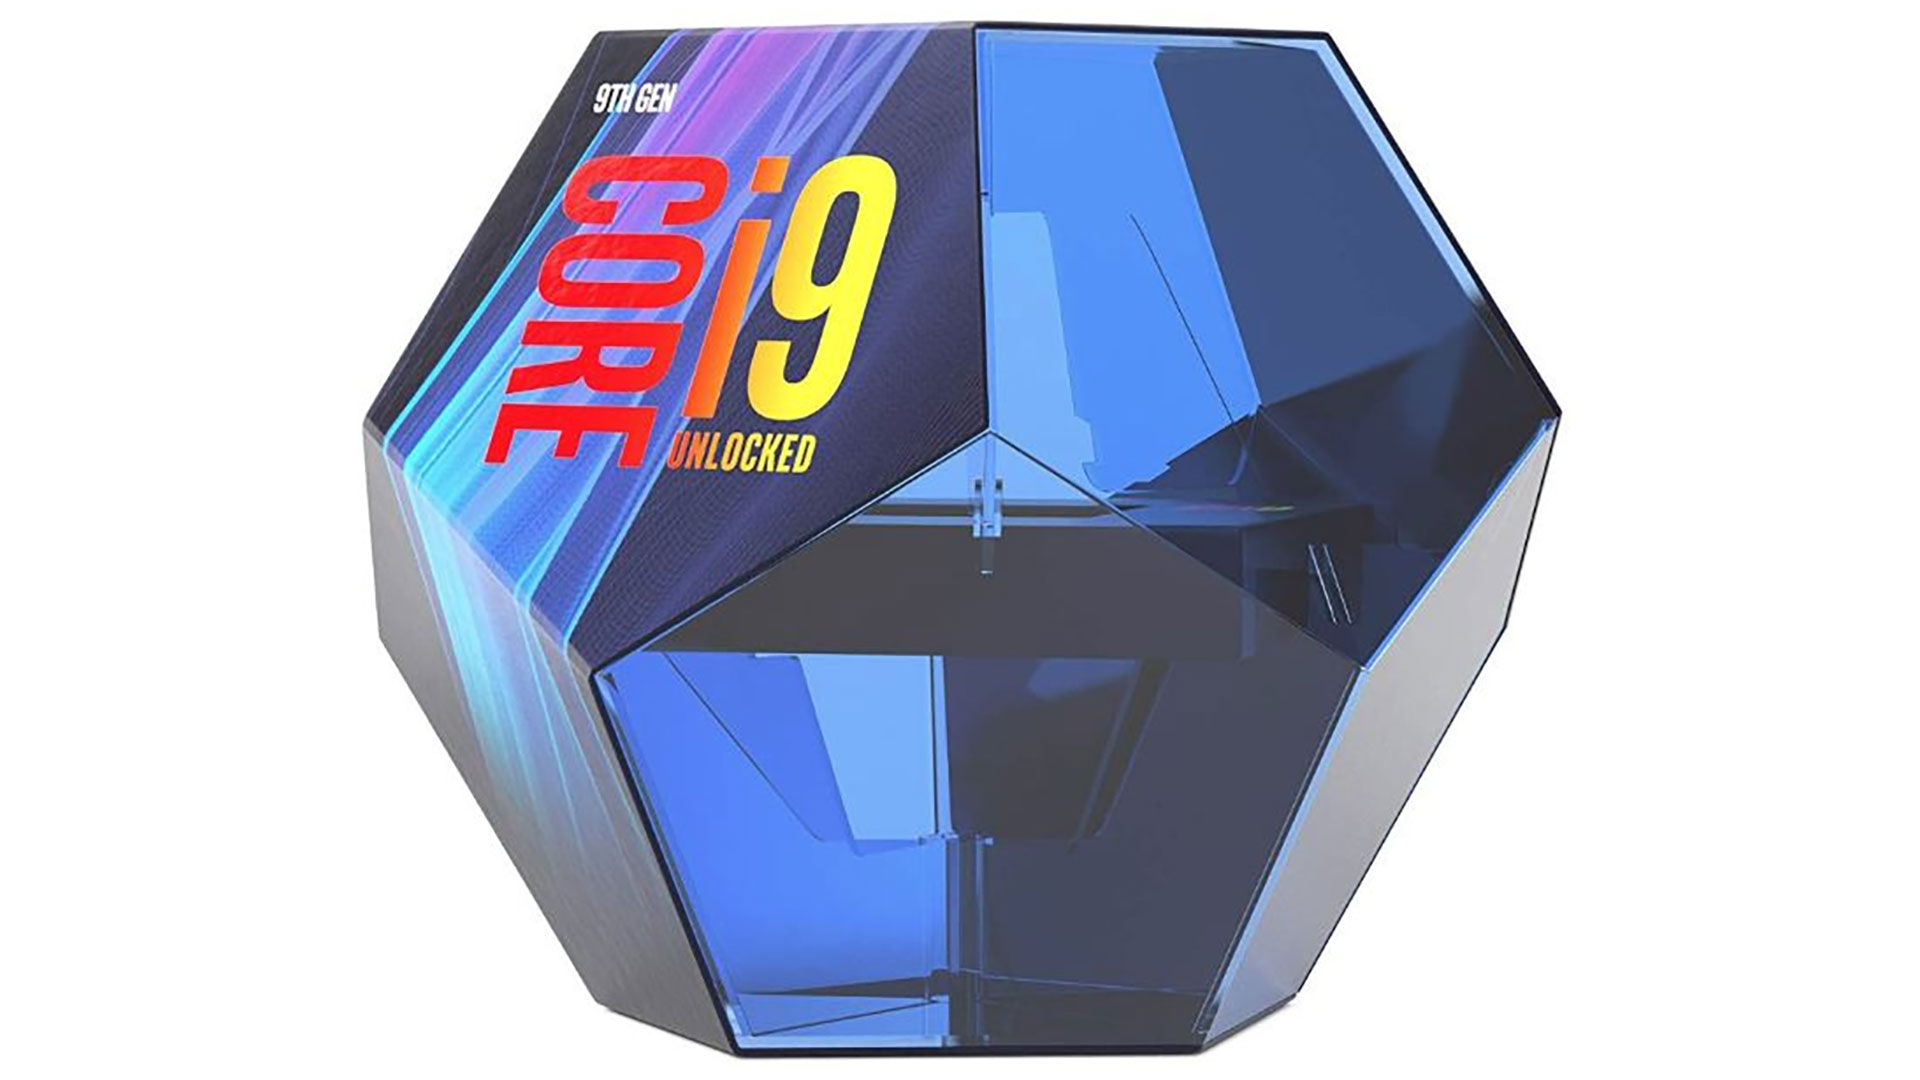 Intel's i9 9900K listed for $583 with packaging straight out